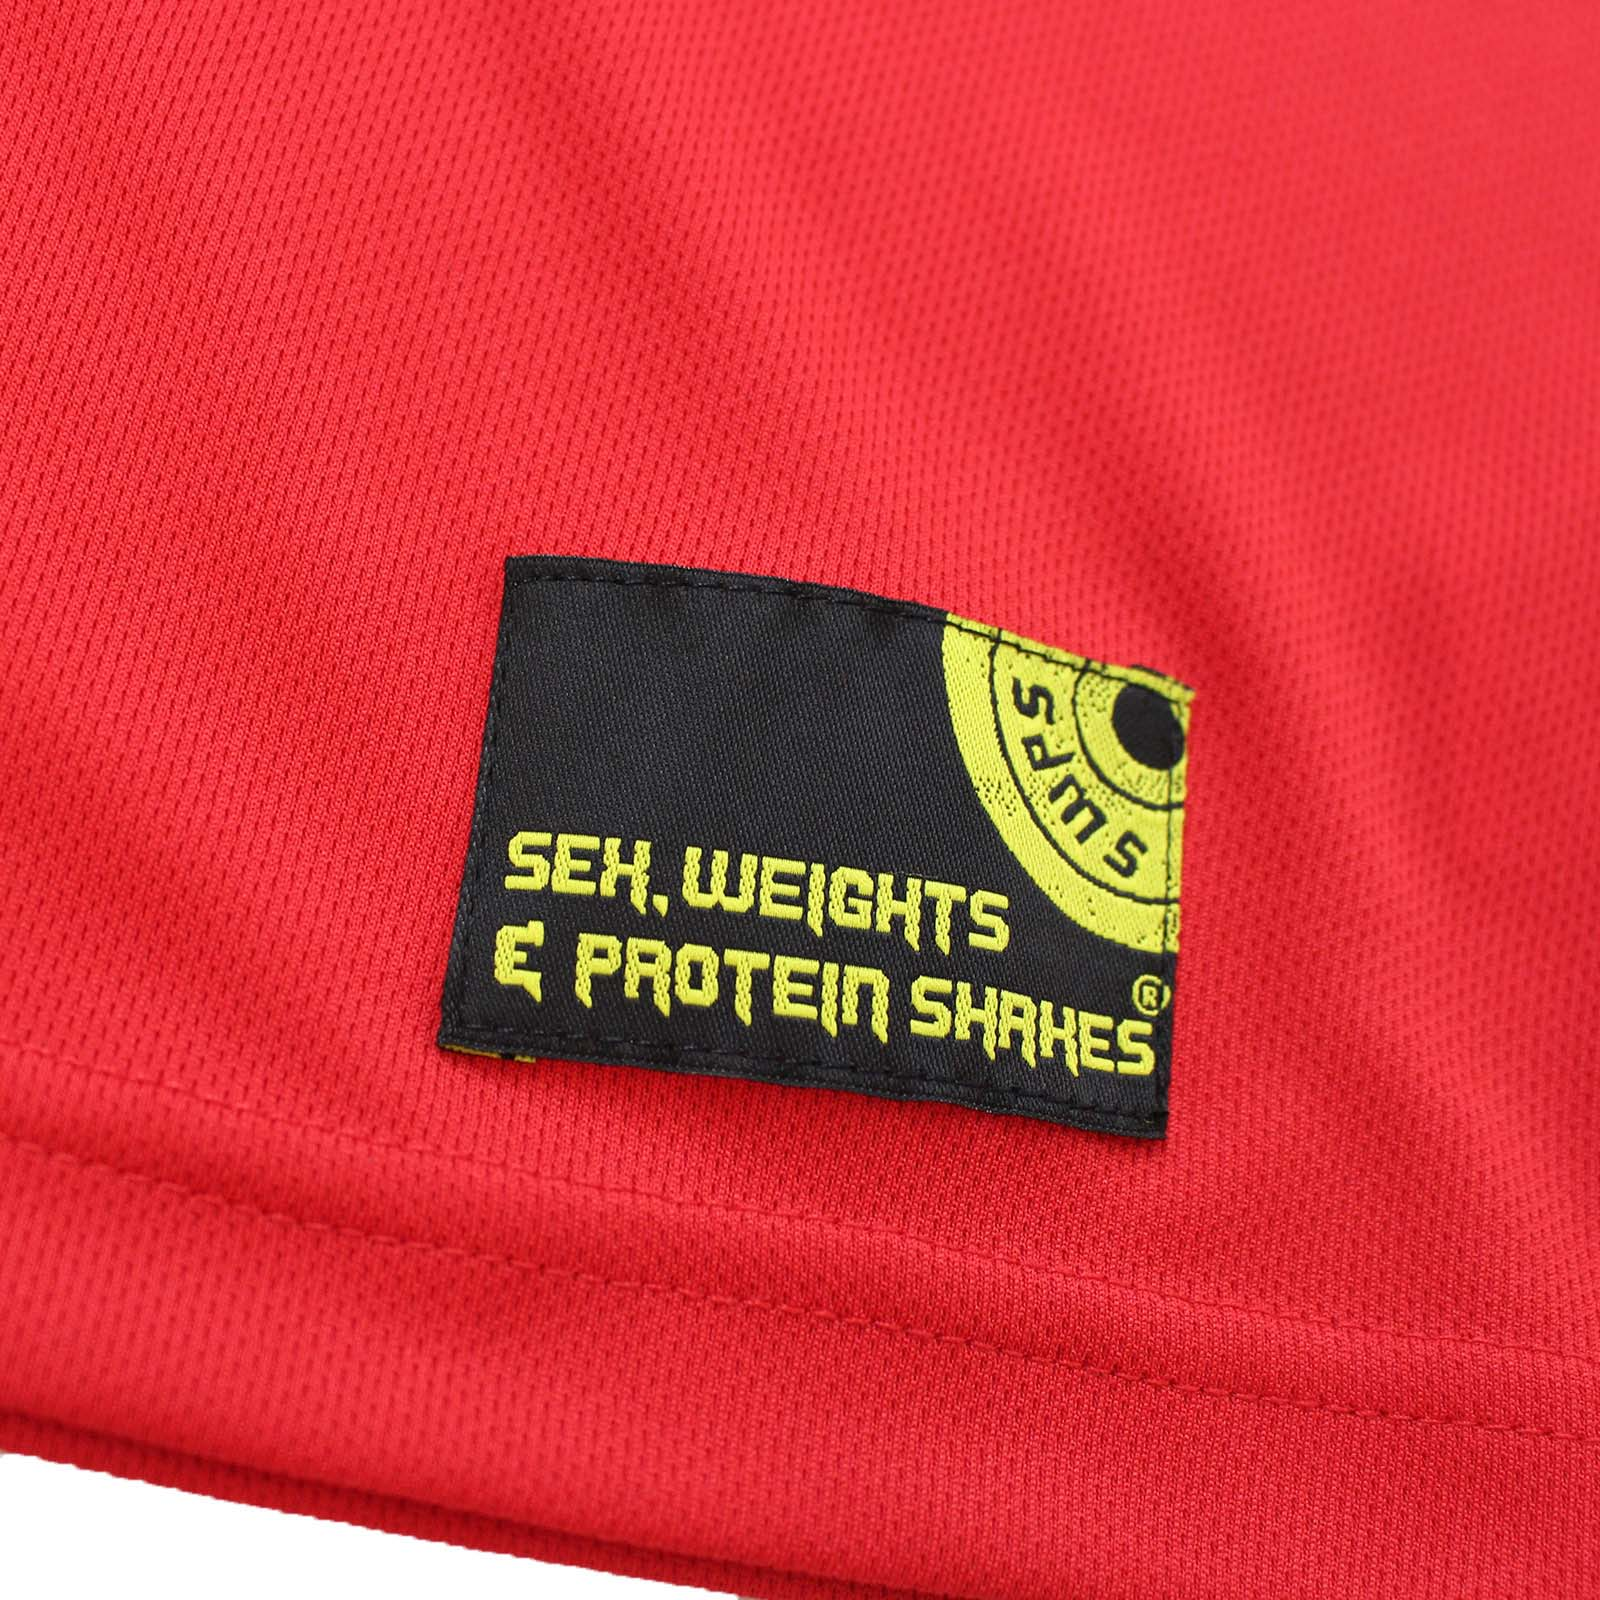 Premium Dry Fit Breathable Sports T-SHIRT SWPS Size Does Matter